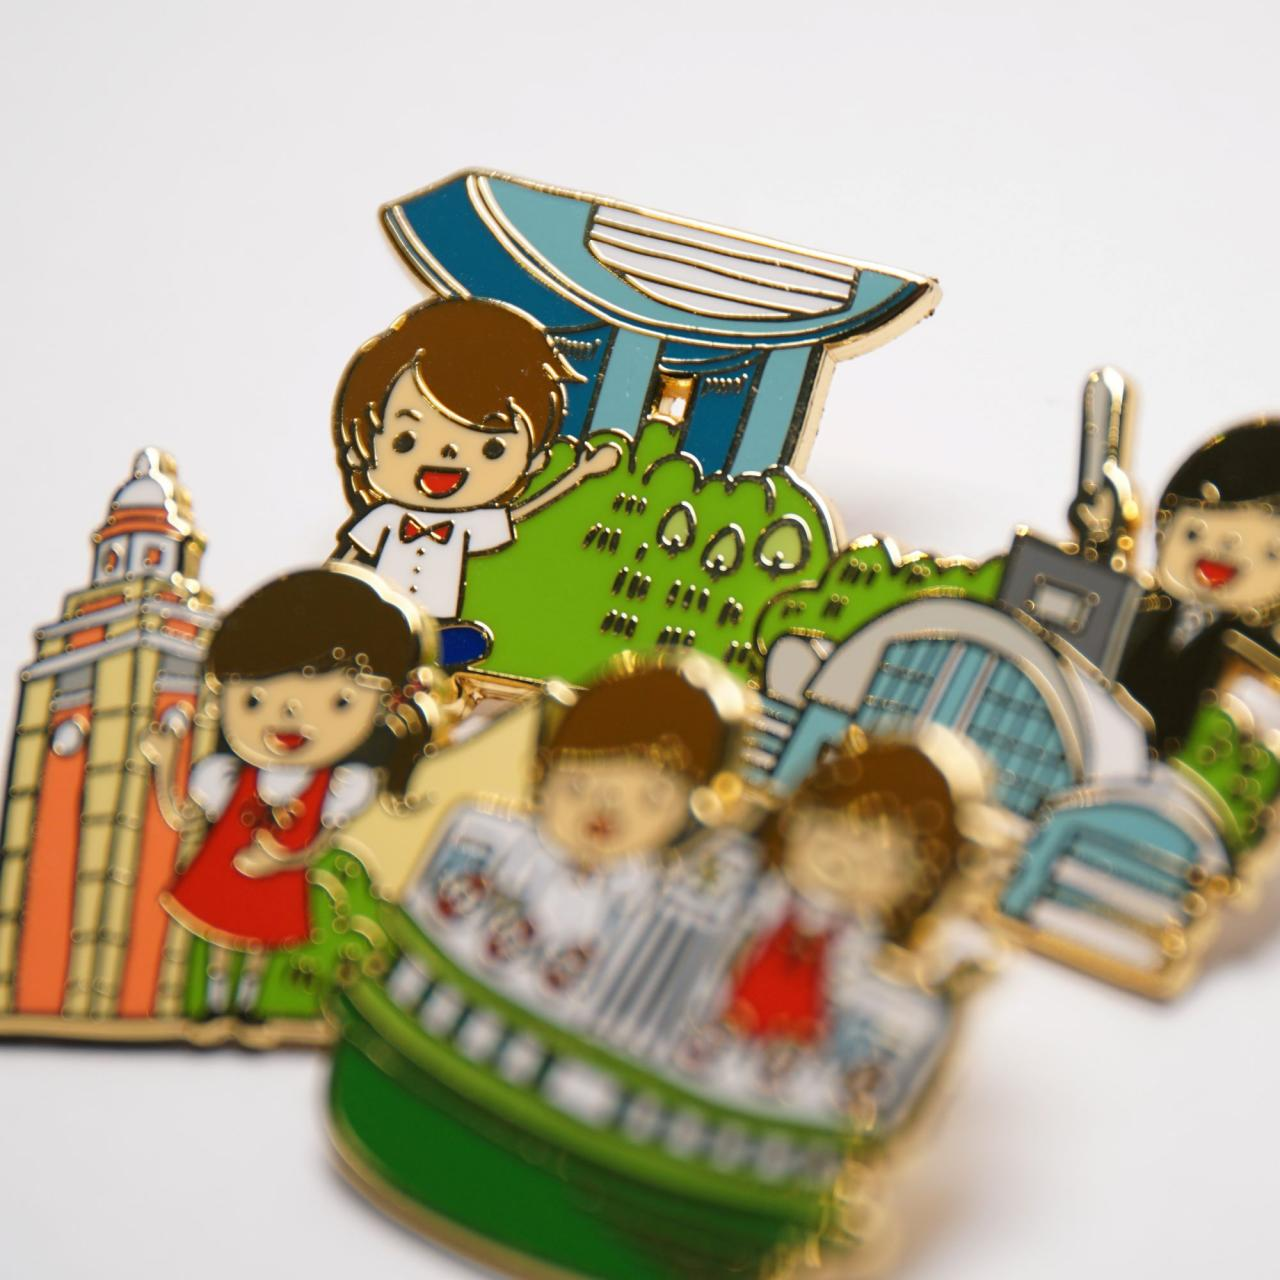 HKCC Pin – The Peak